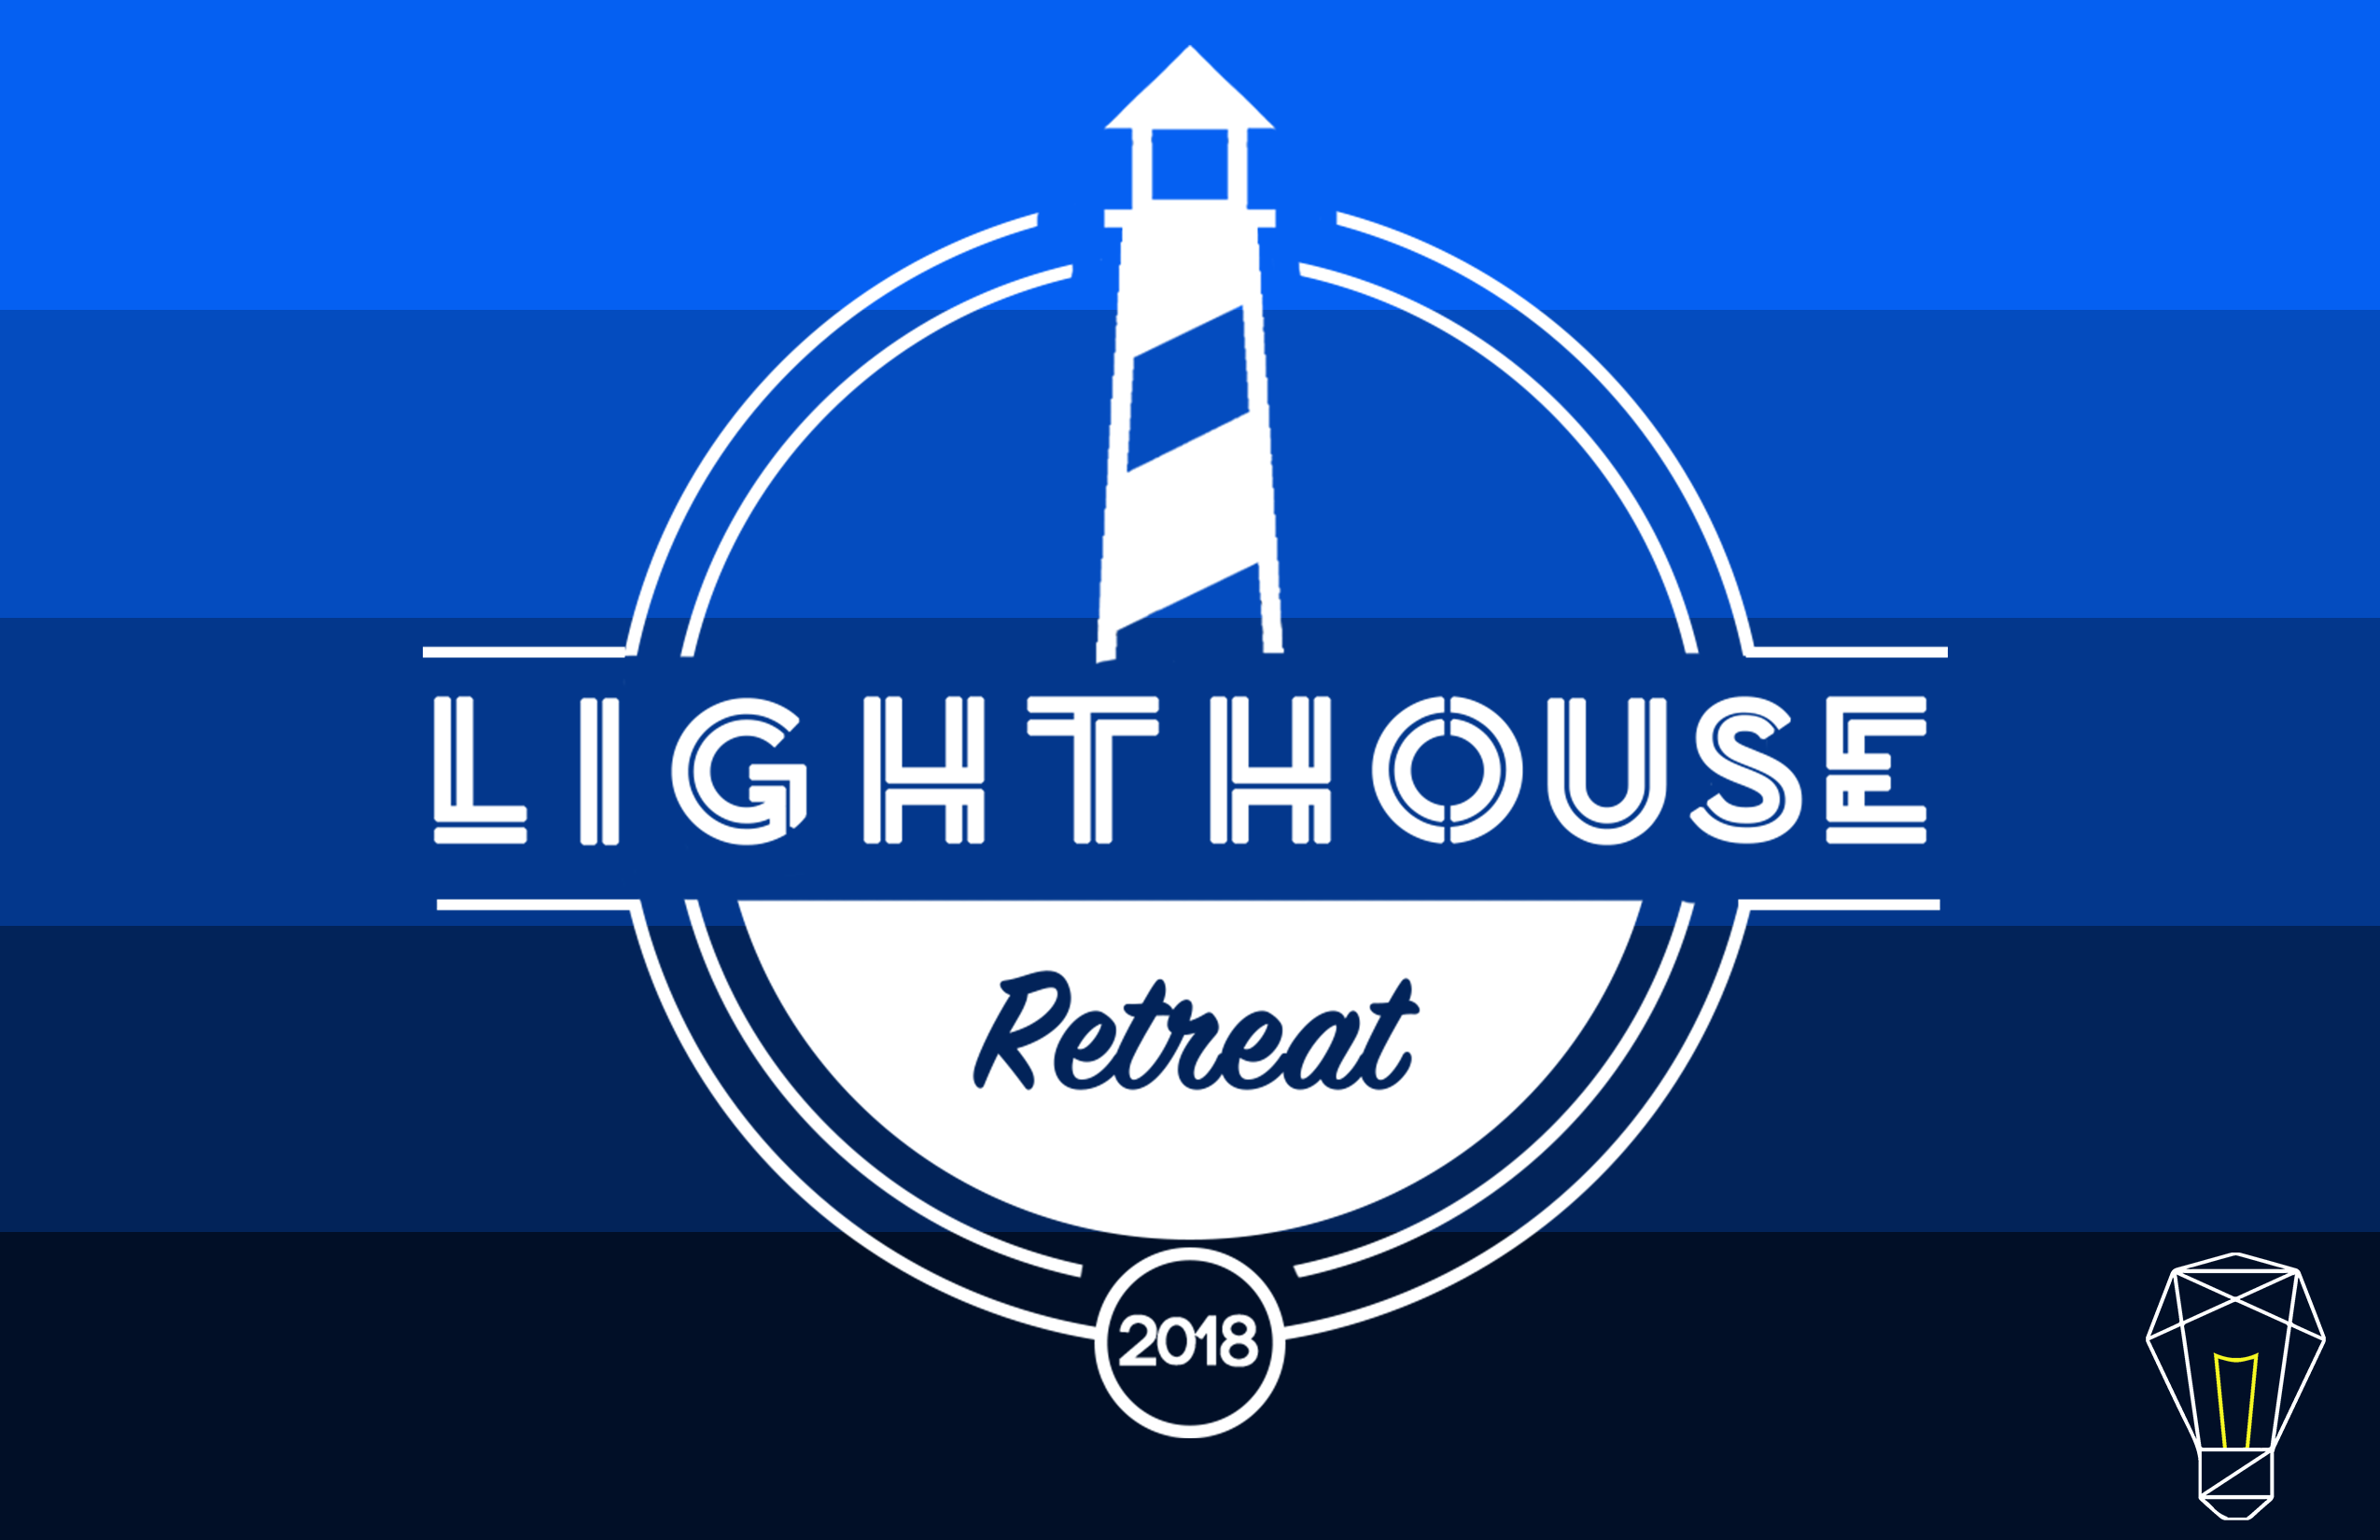 Lighthouse retreat save the date front